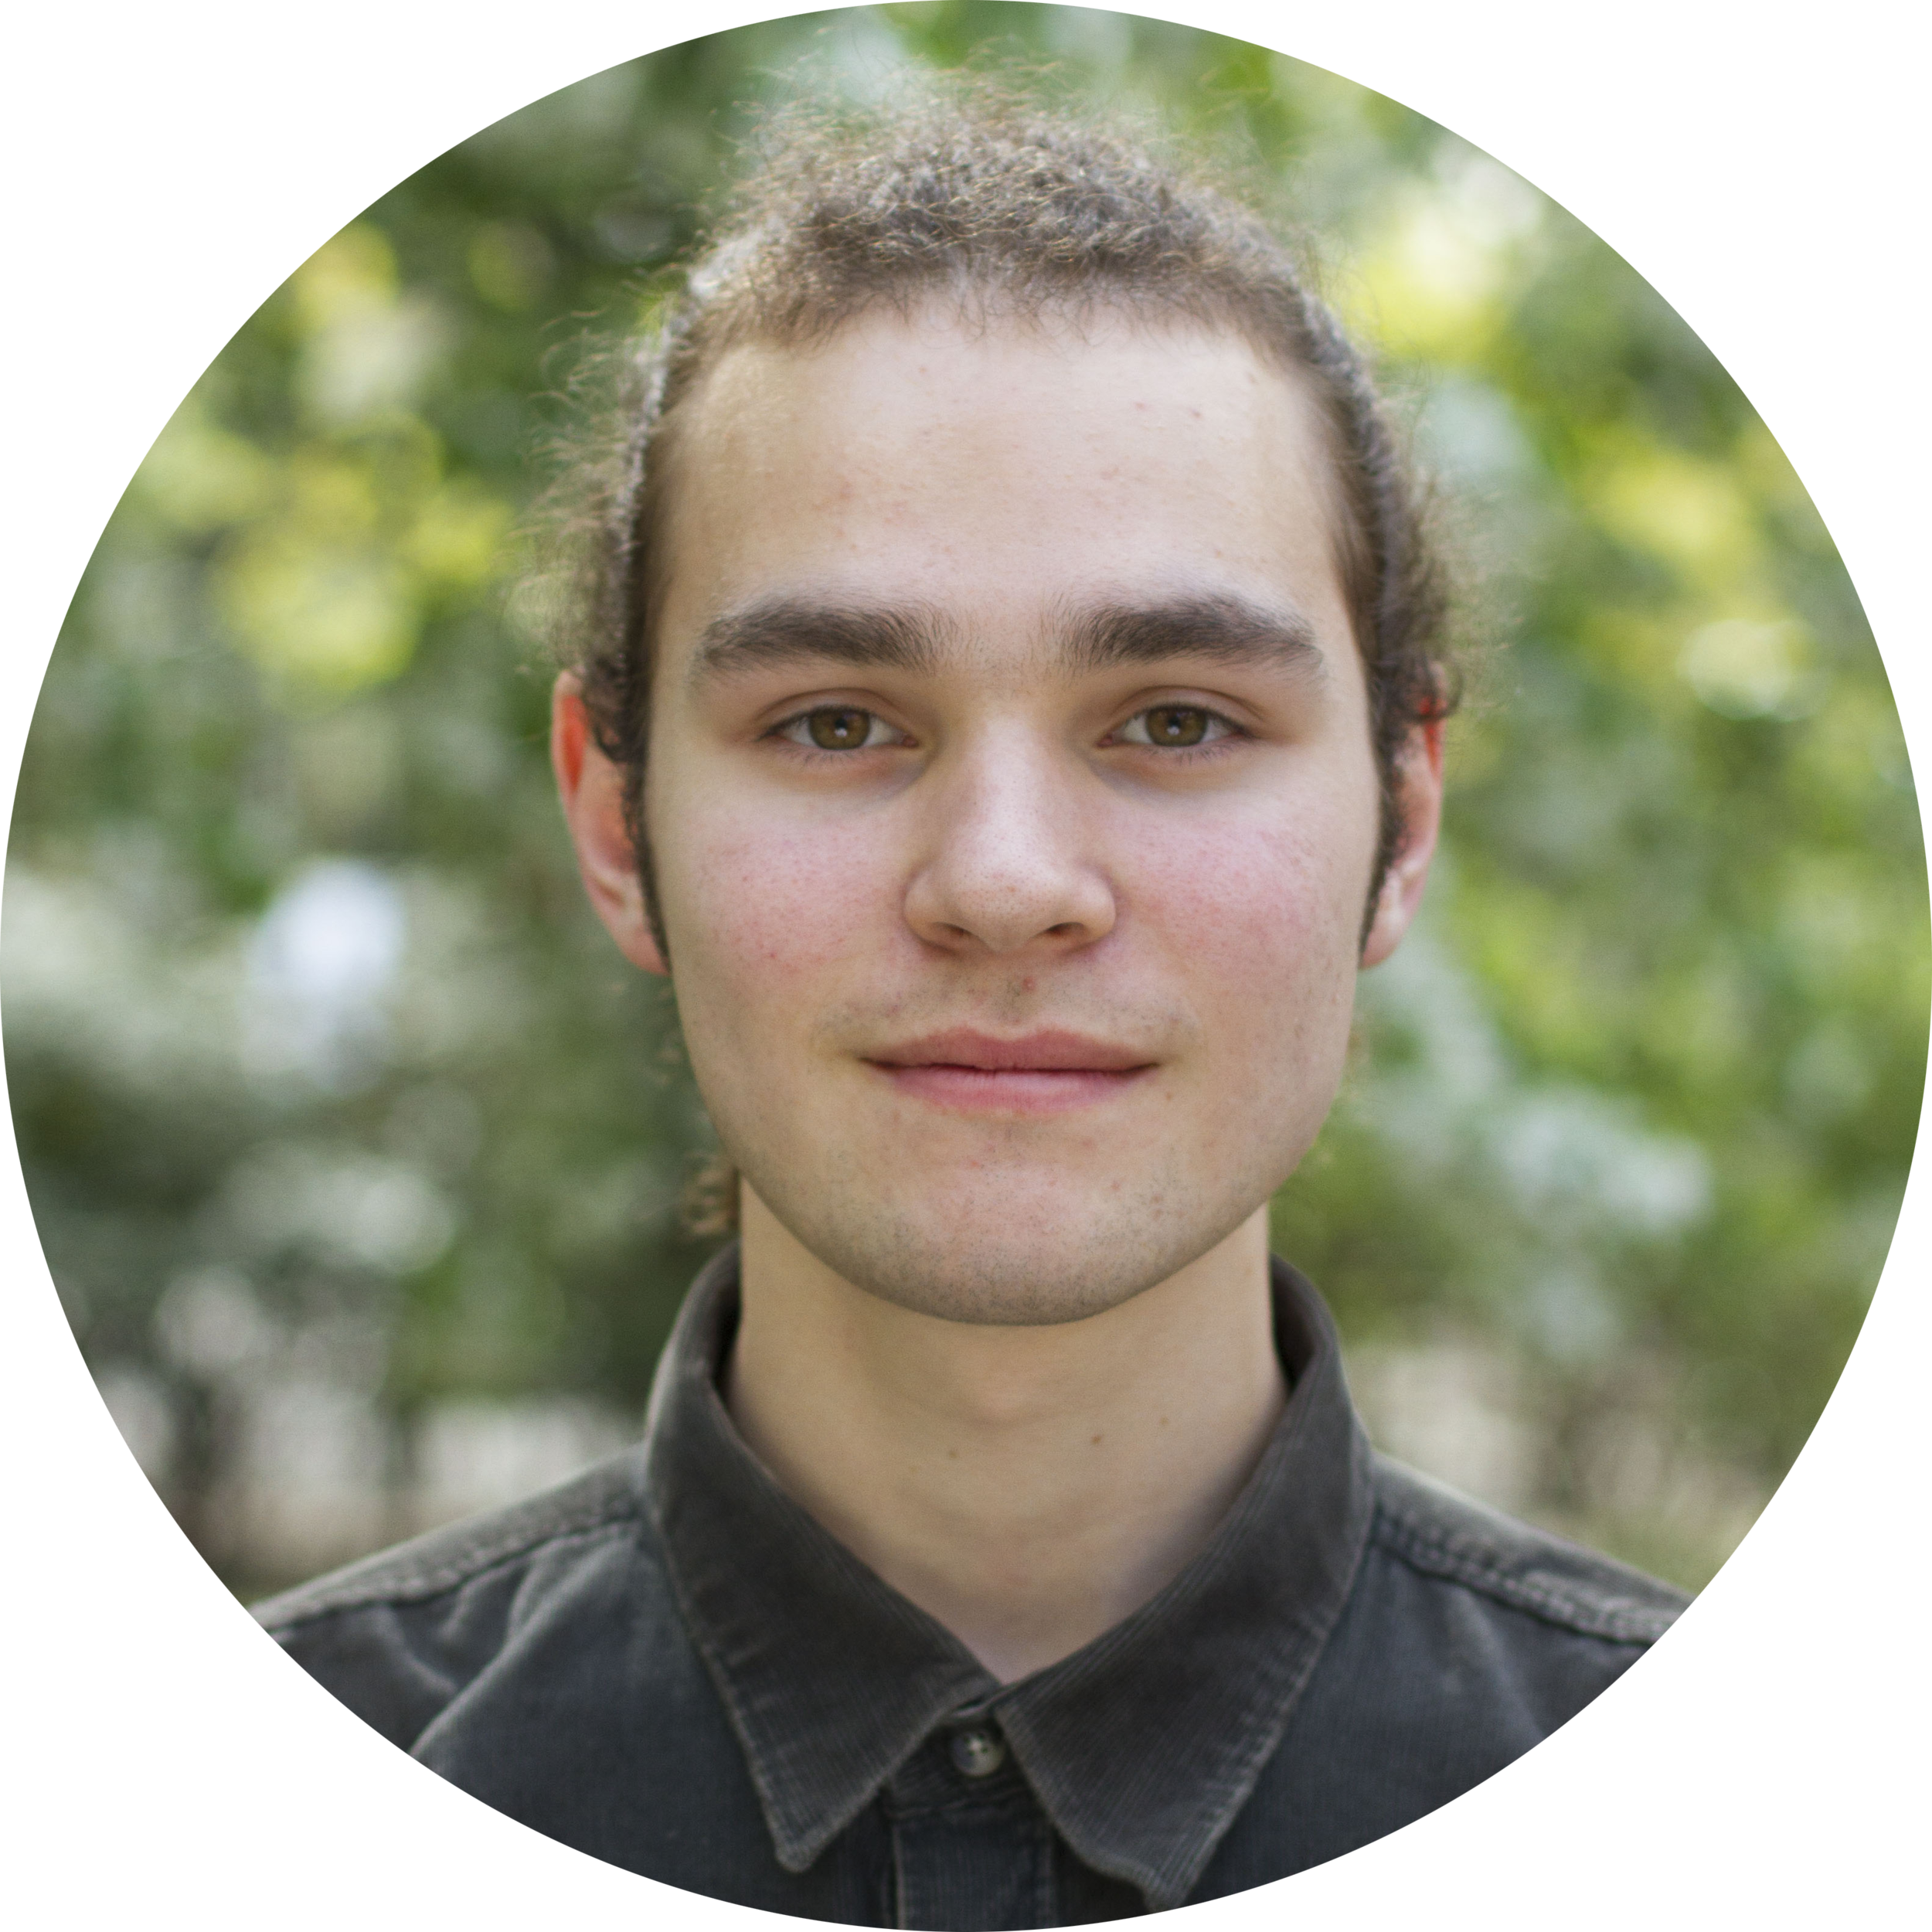 Michael Brittenham  Architecture Team - Maker Village Design Lead  Michael is a junior at NYU Gallatin with a concentration in ecology and the built environment. He enjoys building furniture, playing drums, and his favorite month is April.